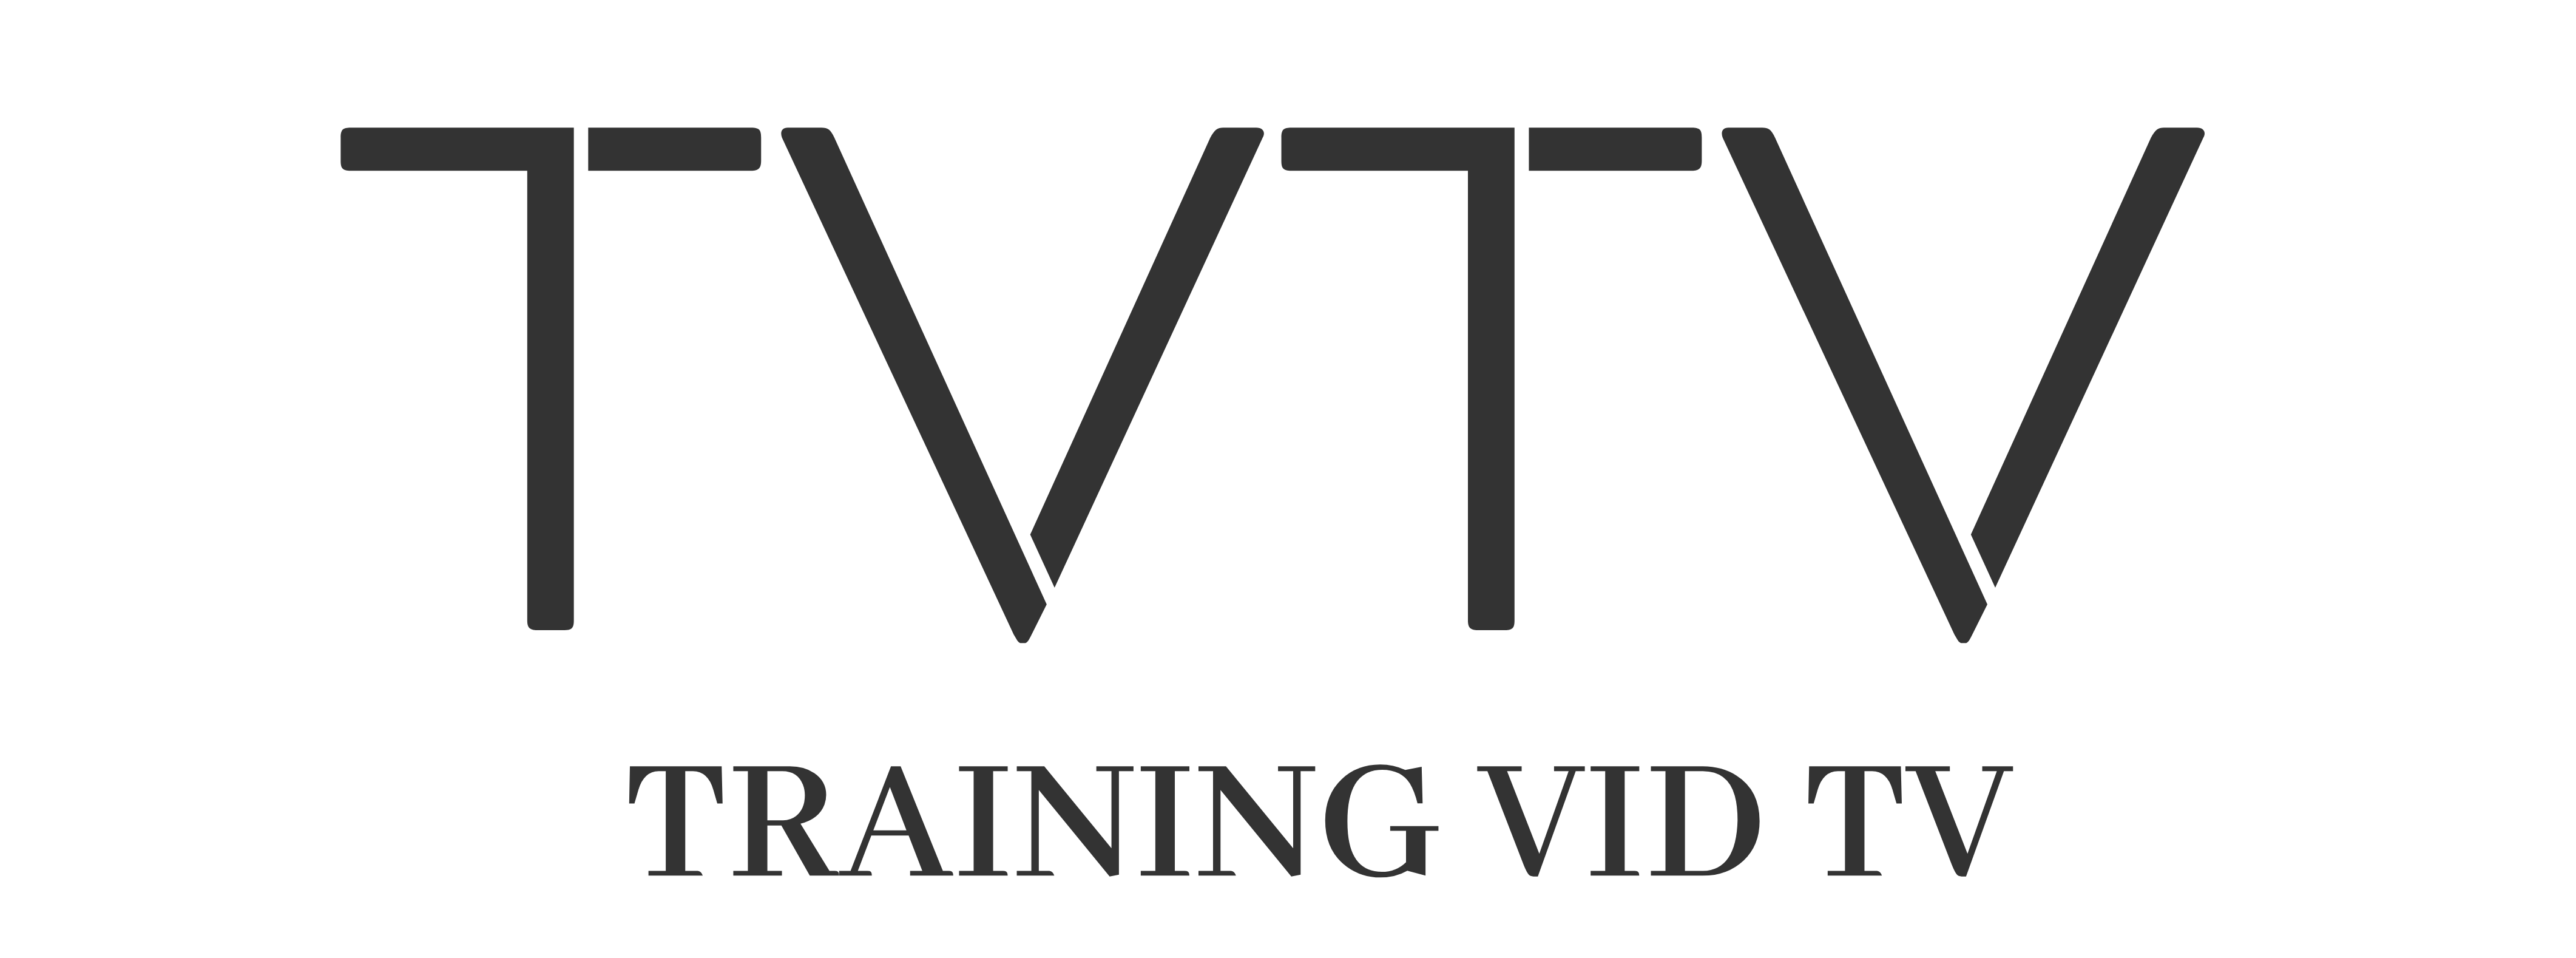 Training Vid TV